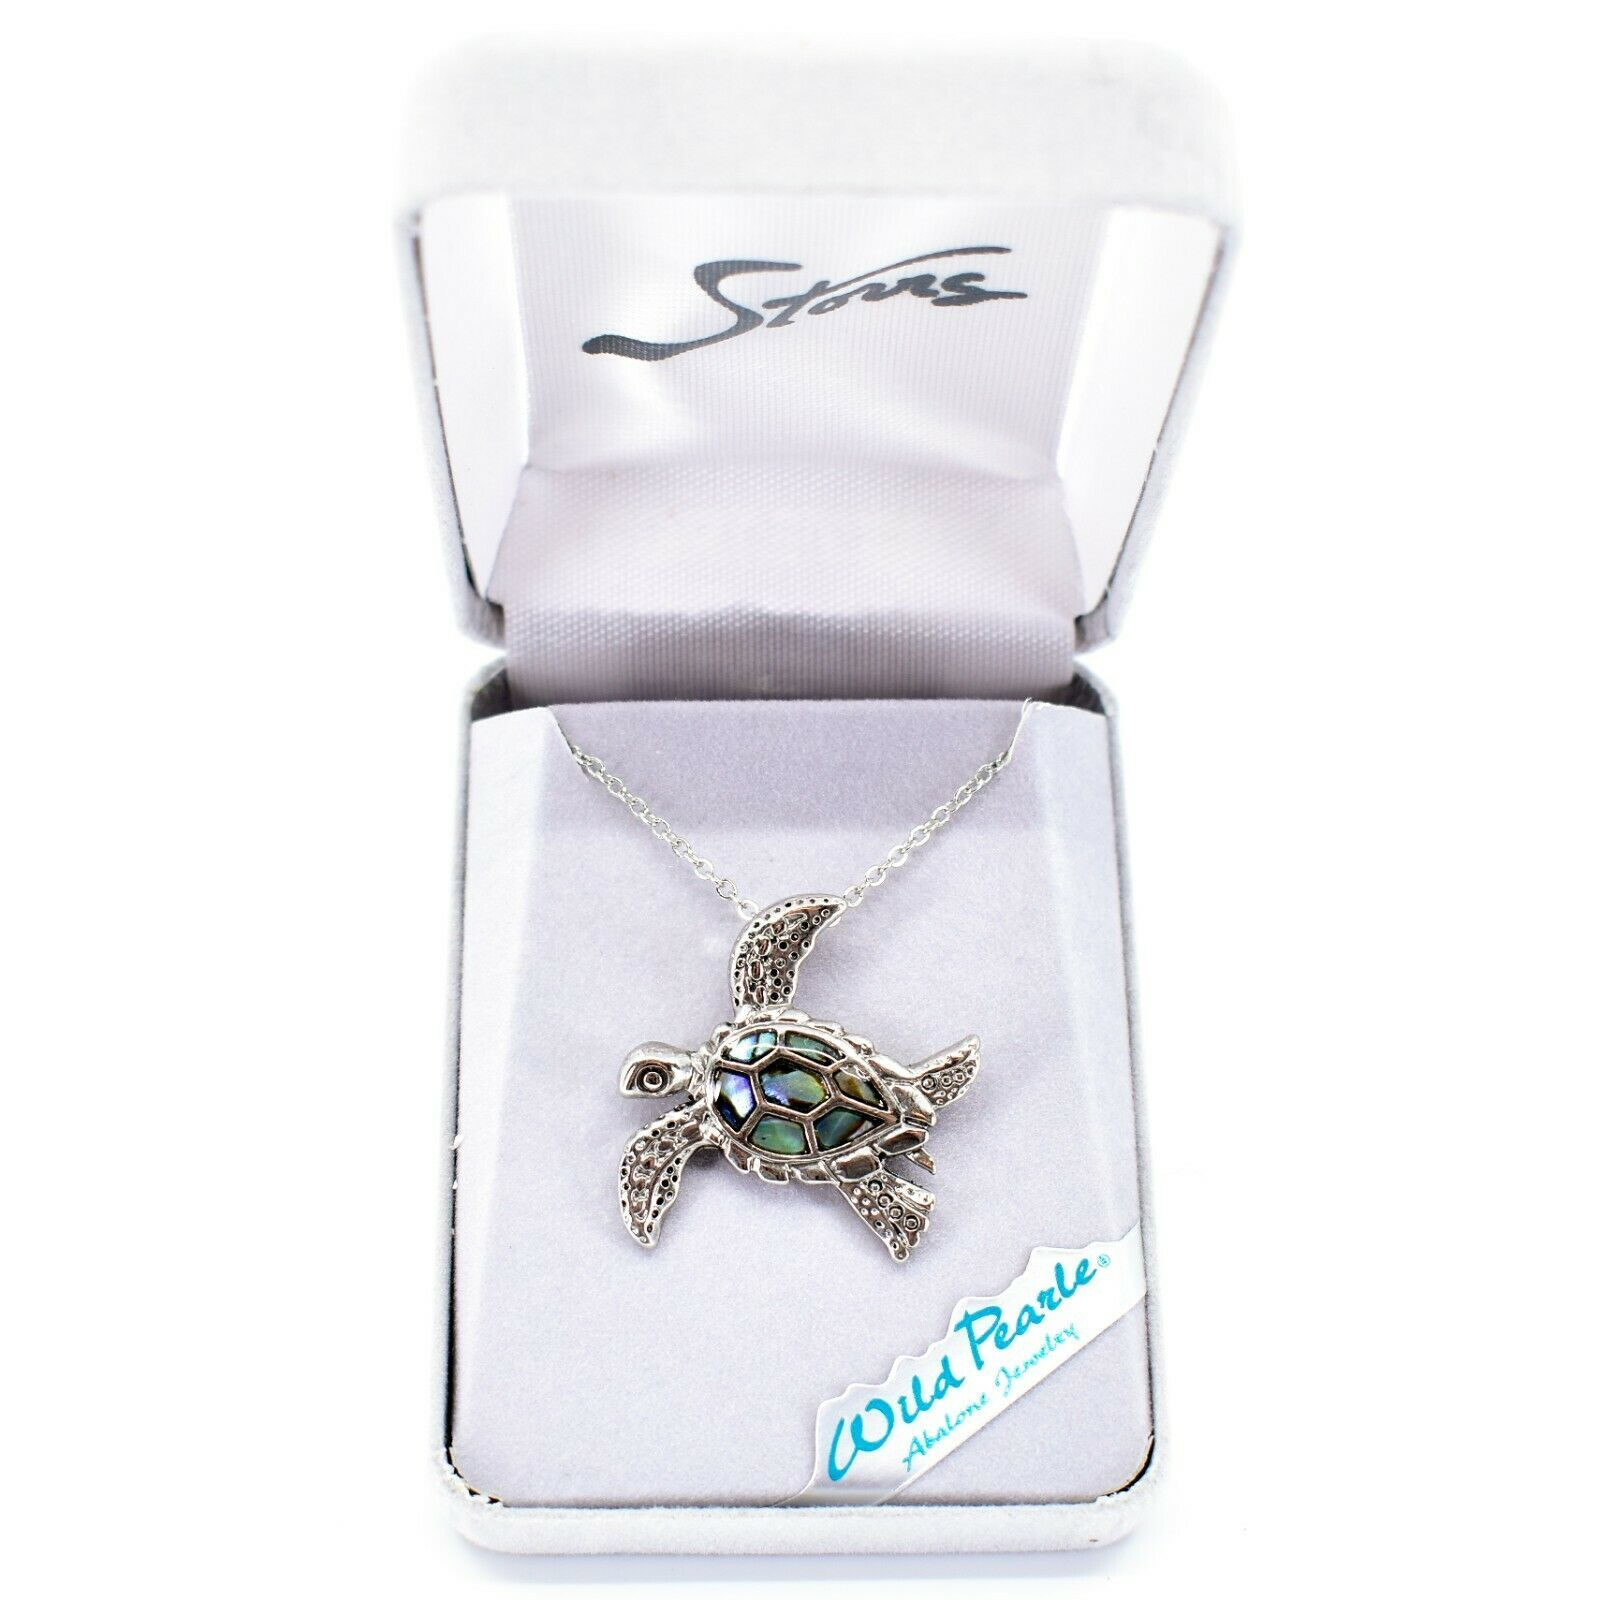 Storrs Wild Pearle Abalone Shell Swimming Sea Turtle Pendant w Necklace